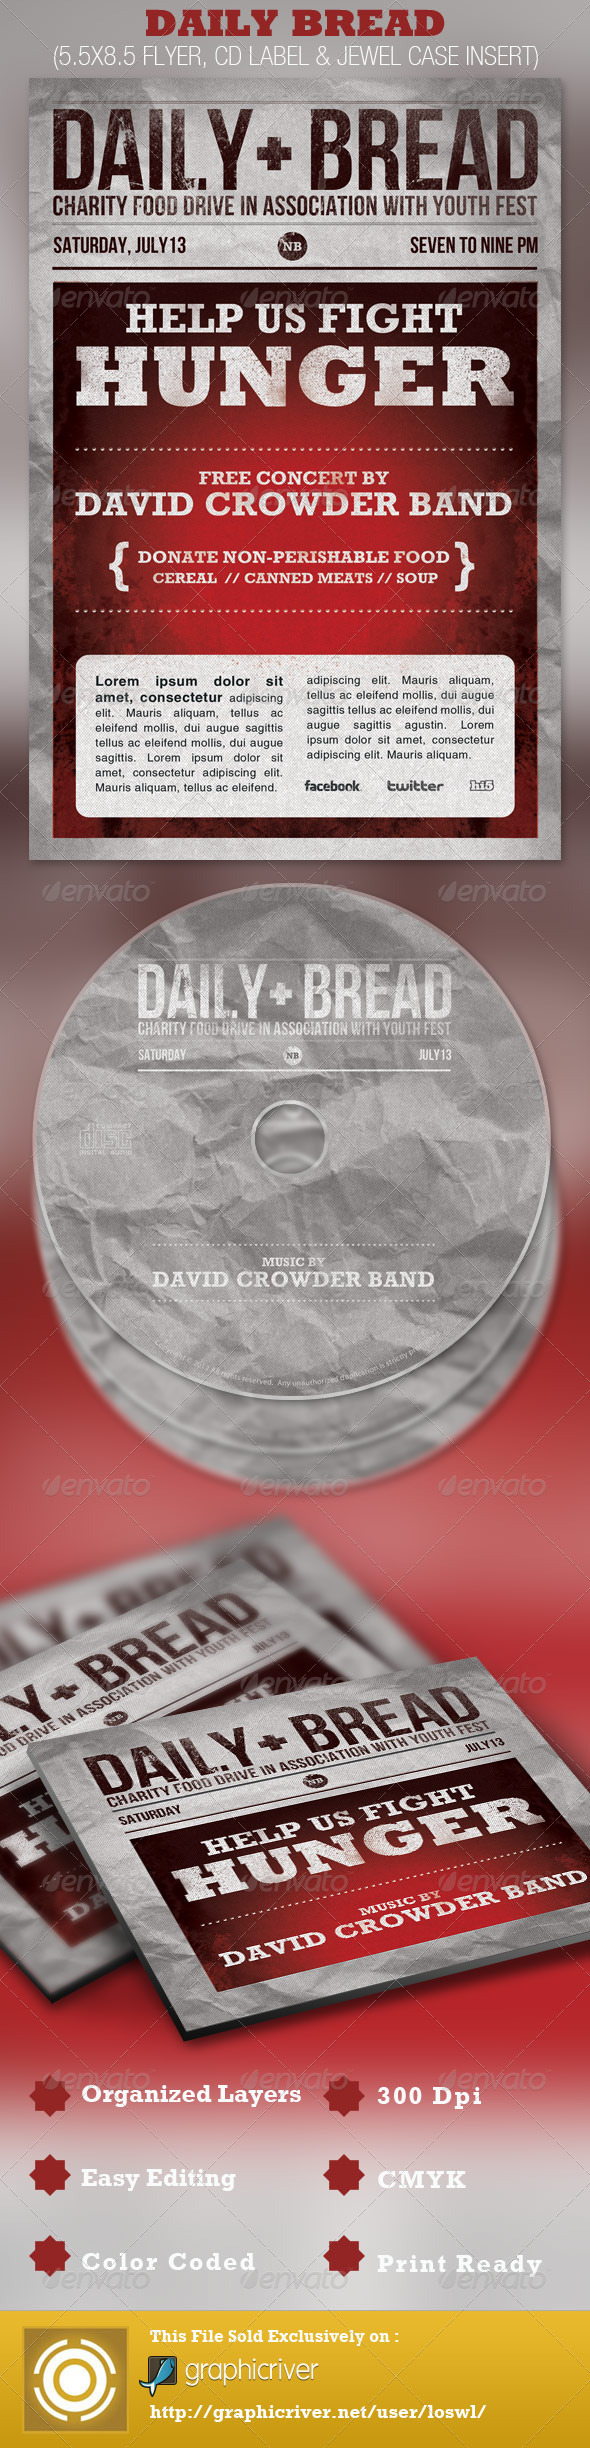 Daily Bread Church Flyer and CD Template - Church Flyers